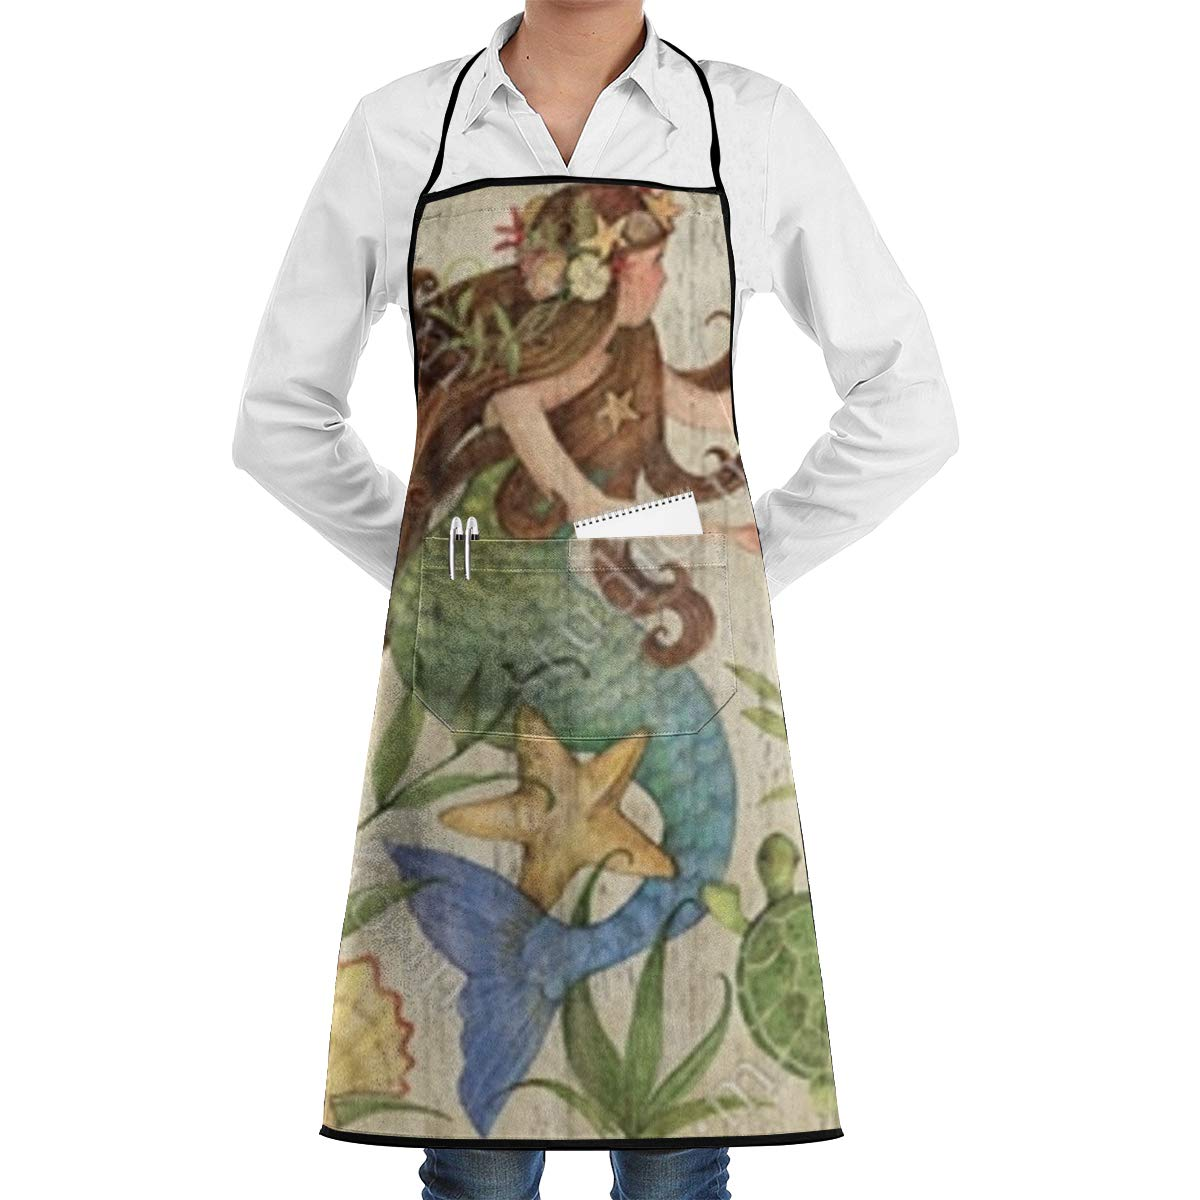 Best Mermaid Aprons For The Kitchen Reviews in 2020 4